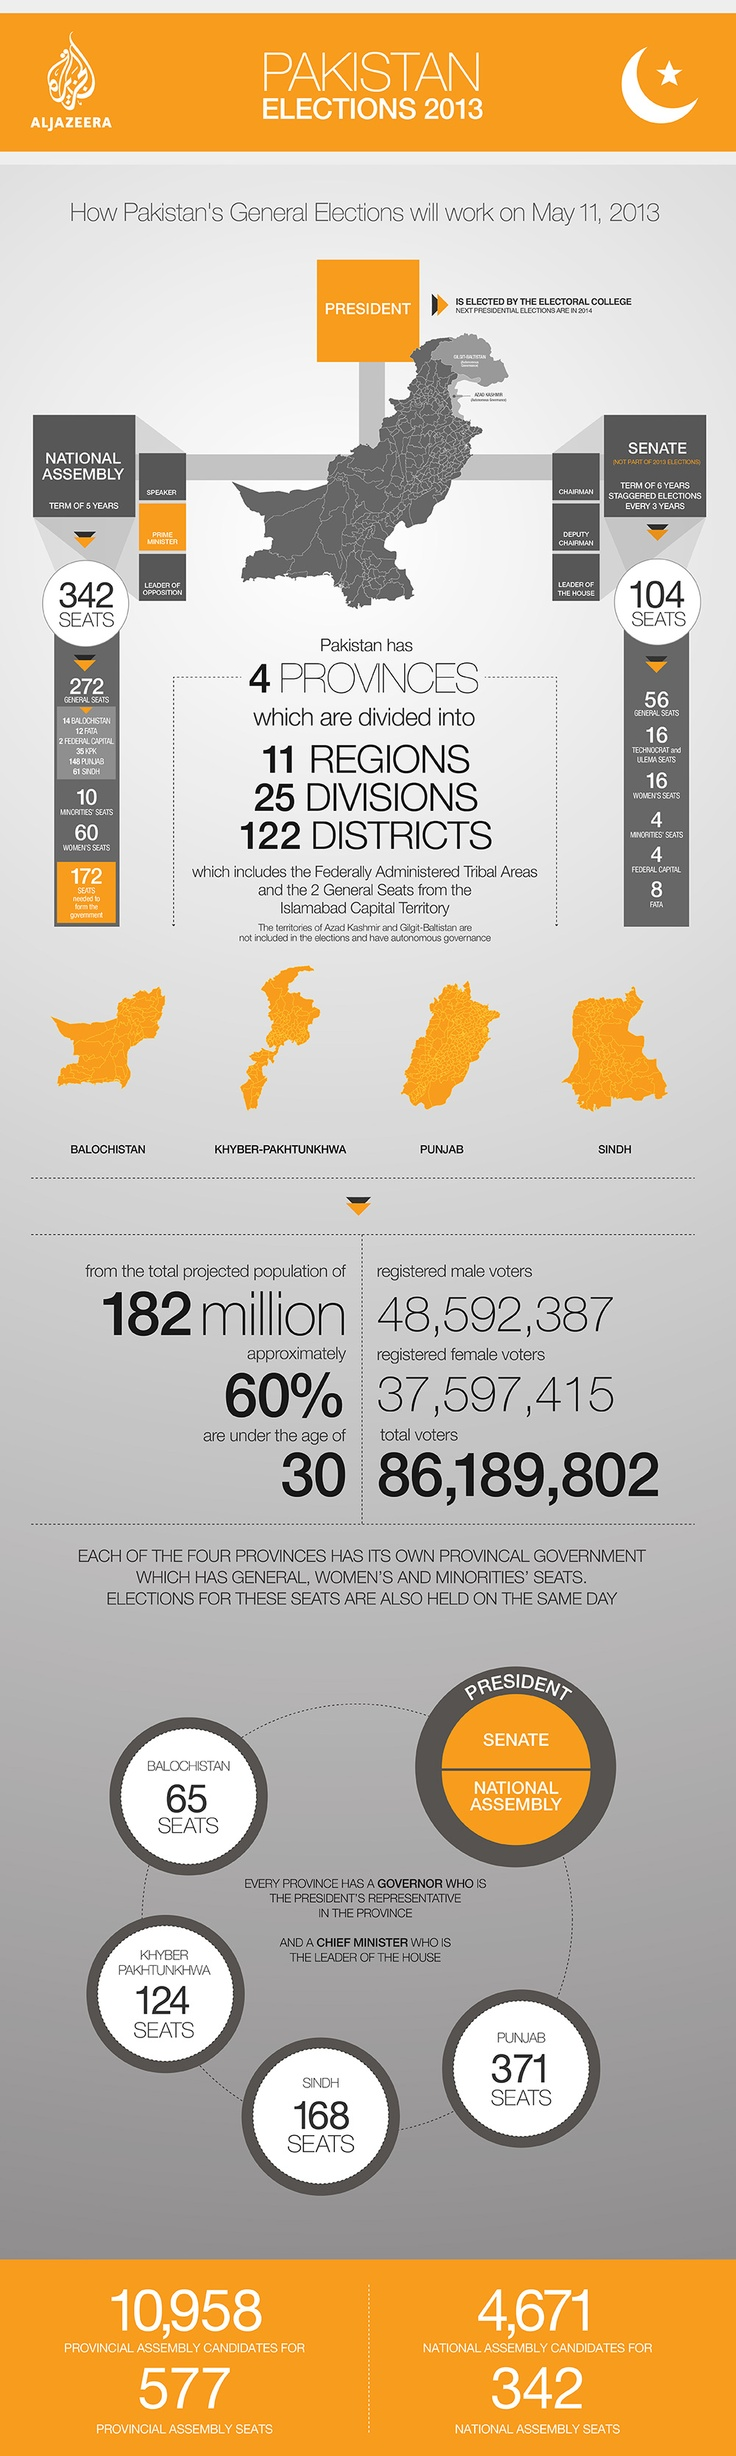 Pakistan elections infographic